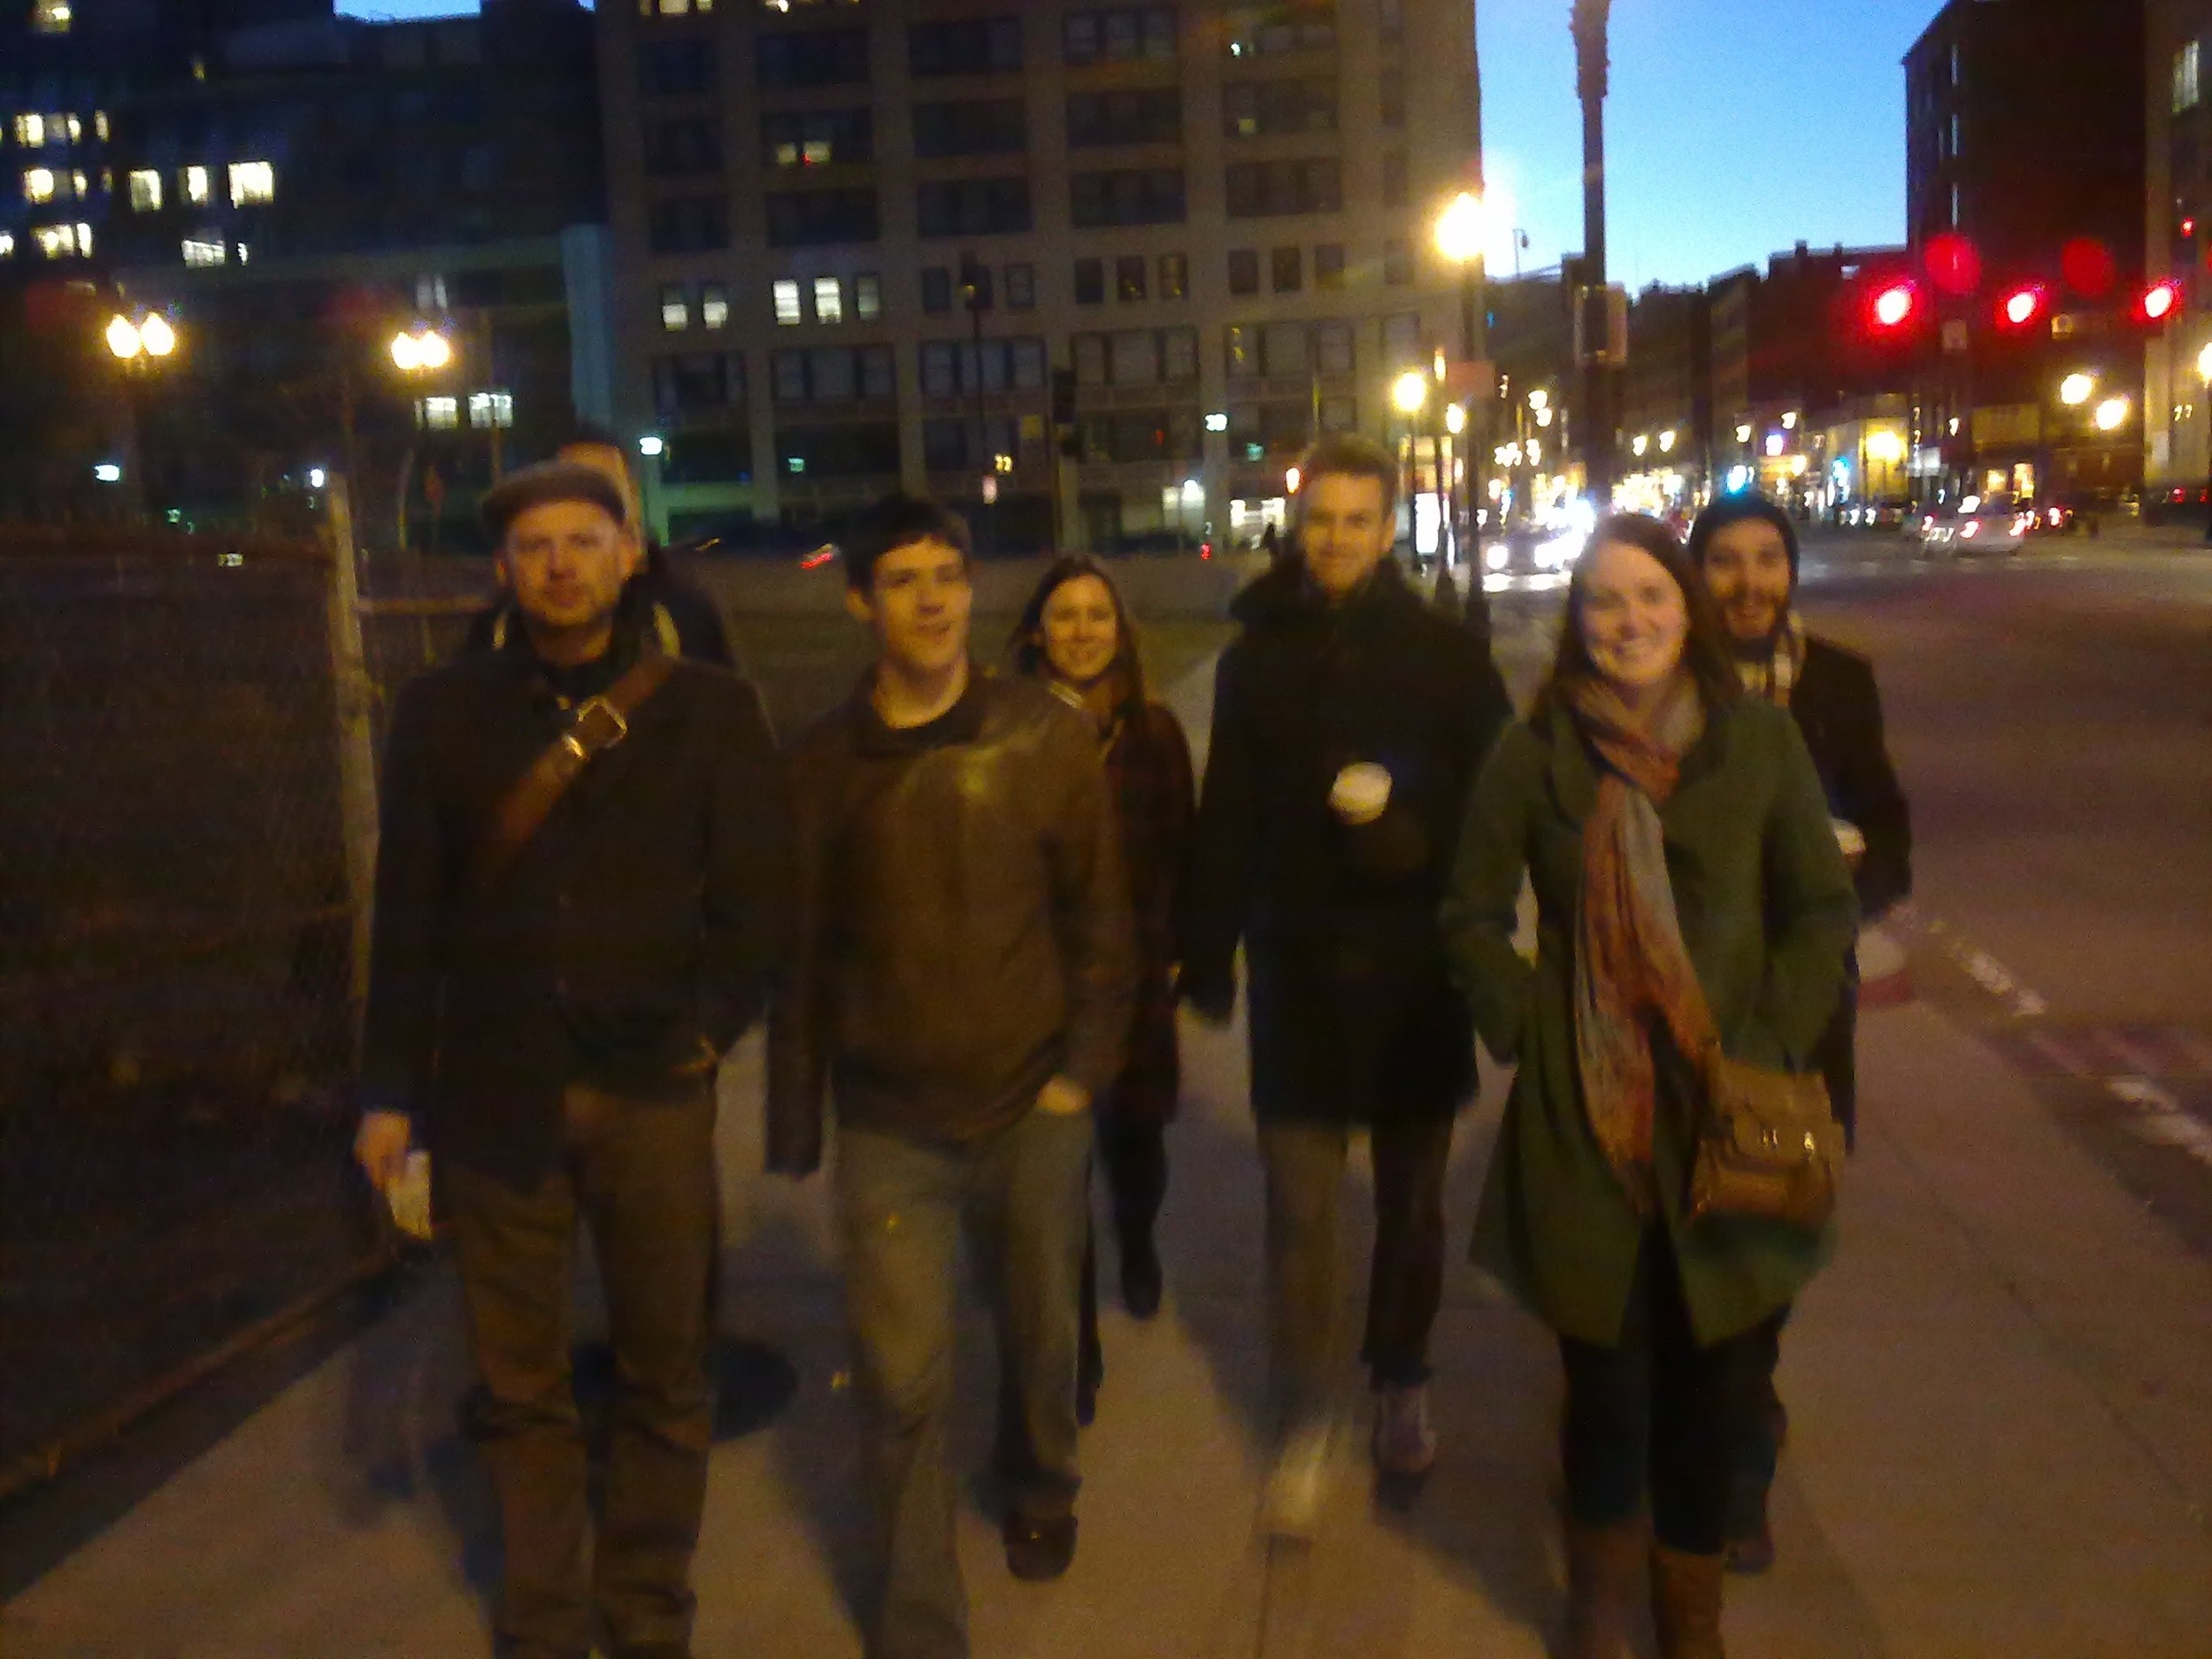 The Soft-matter Posse walking the streets of Boston